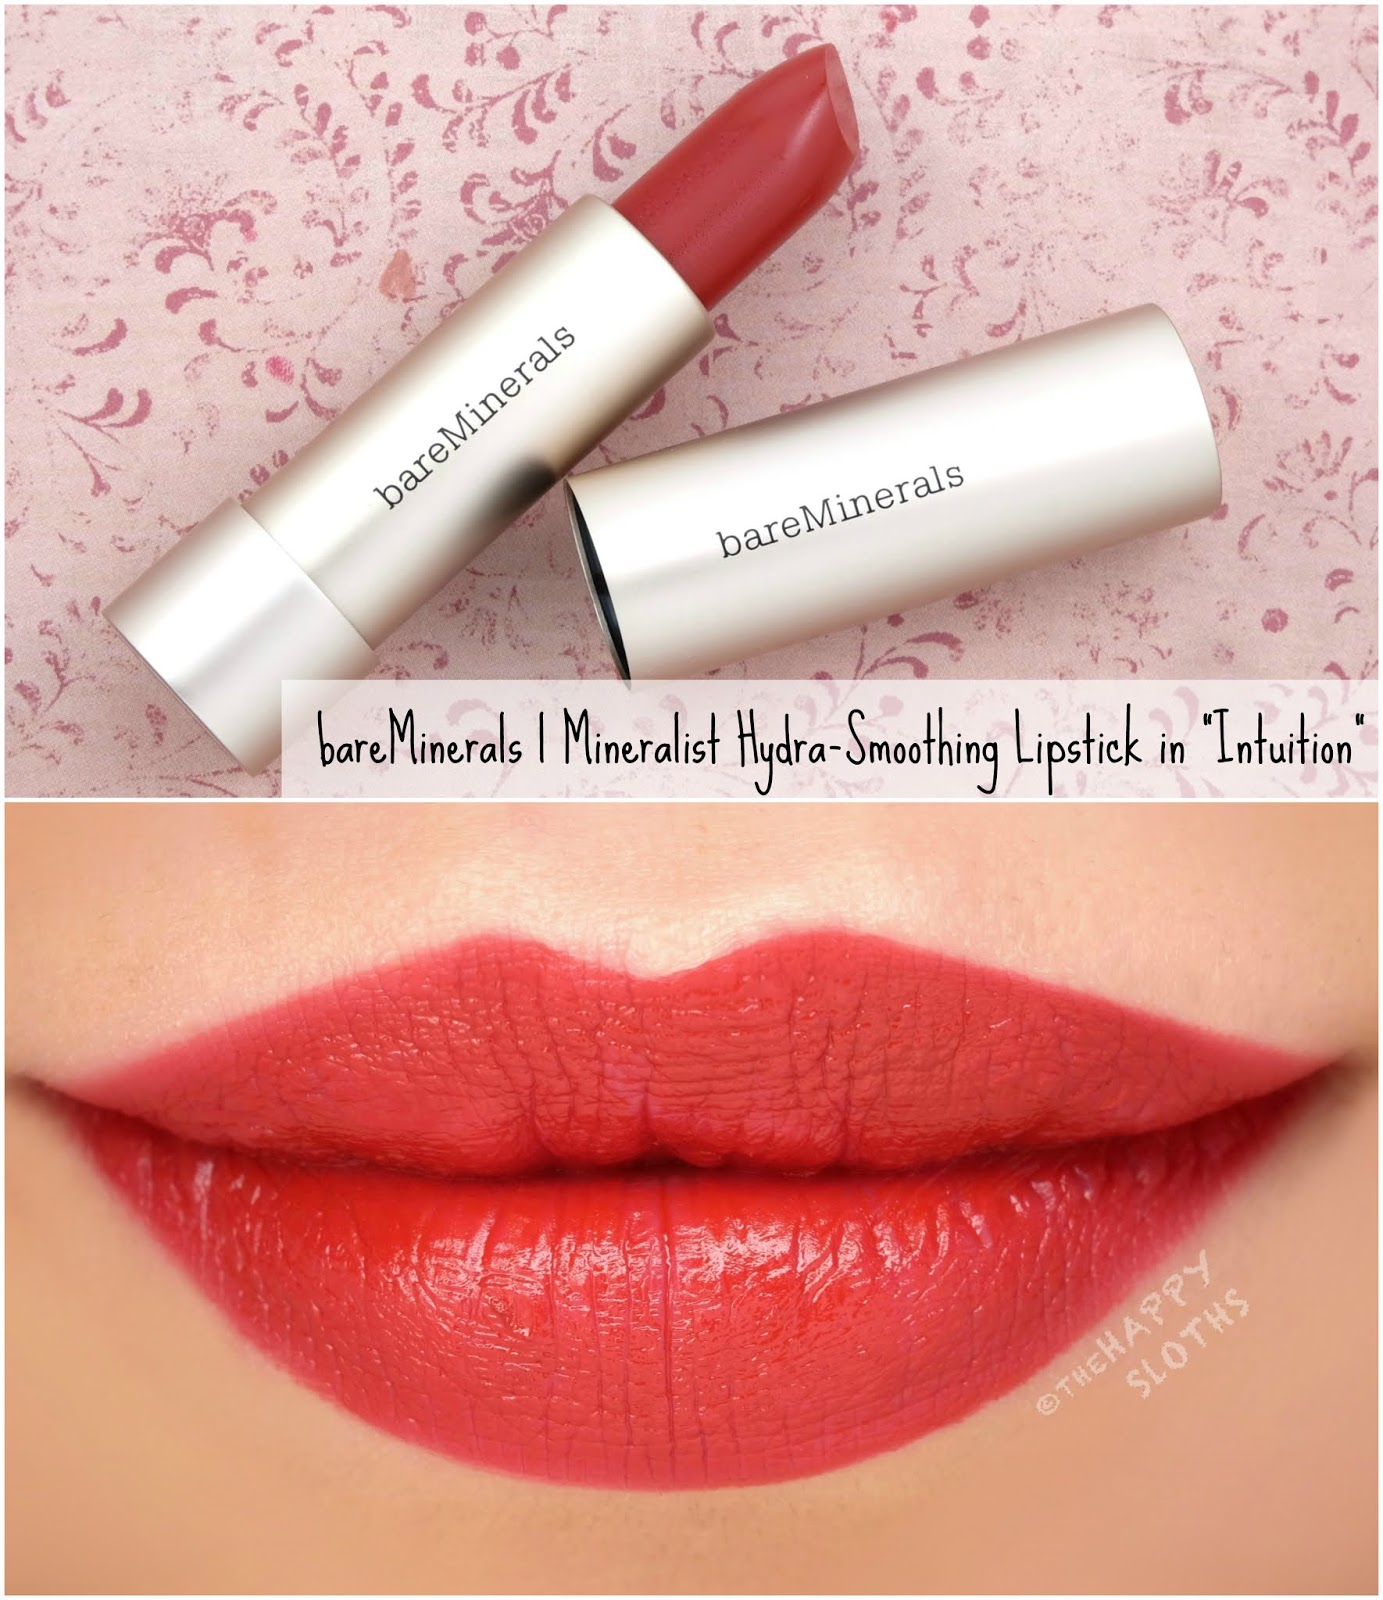 "bareMinerals | Mineralist Hydra-Smoothing Lipstick in ""Intuition"": Review and Swatches"